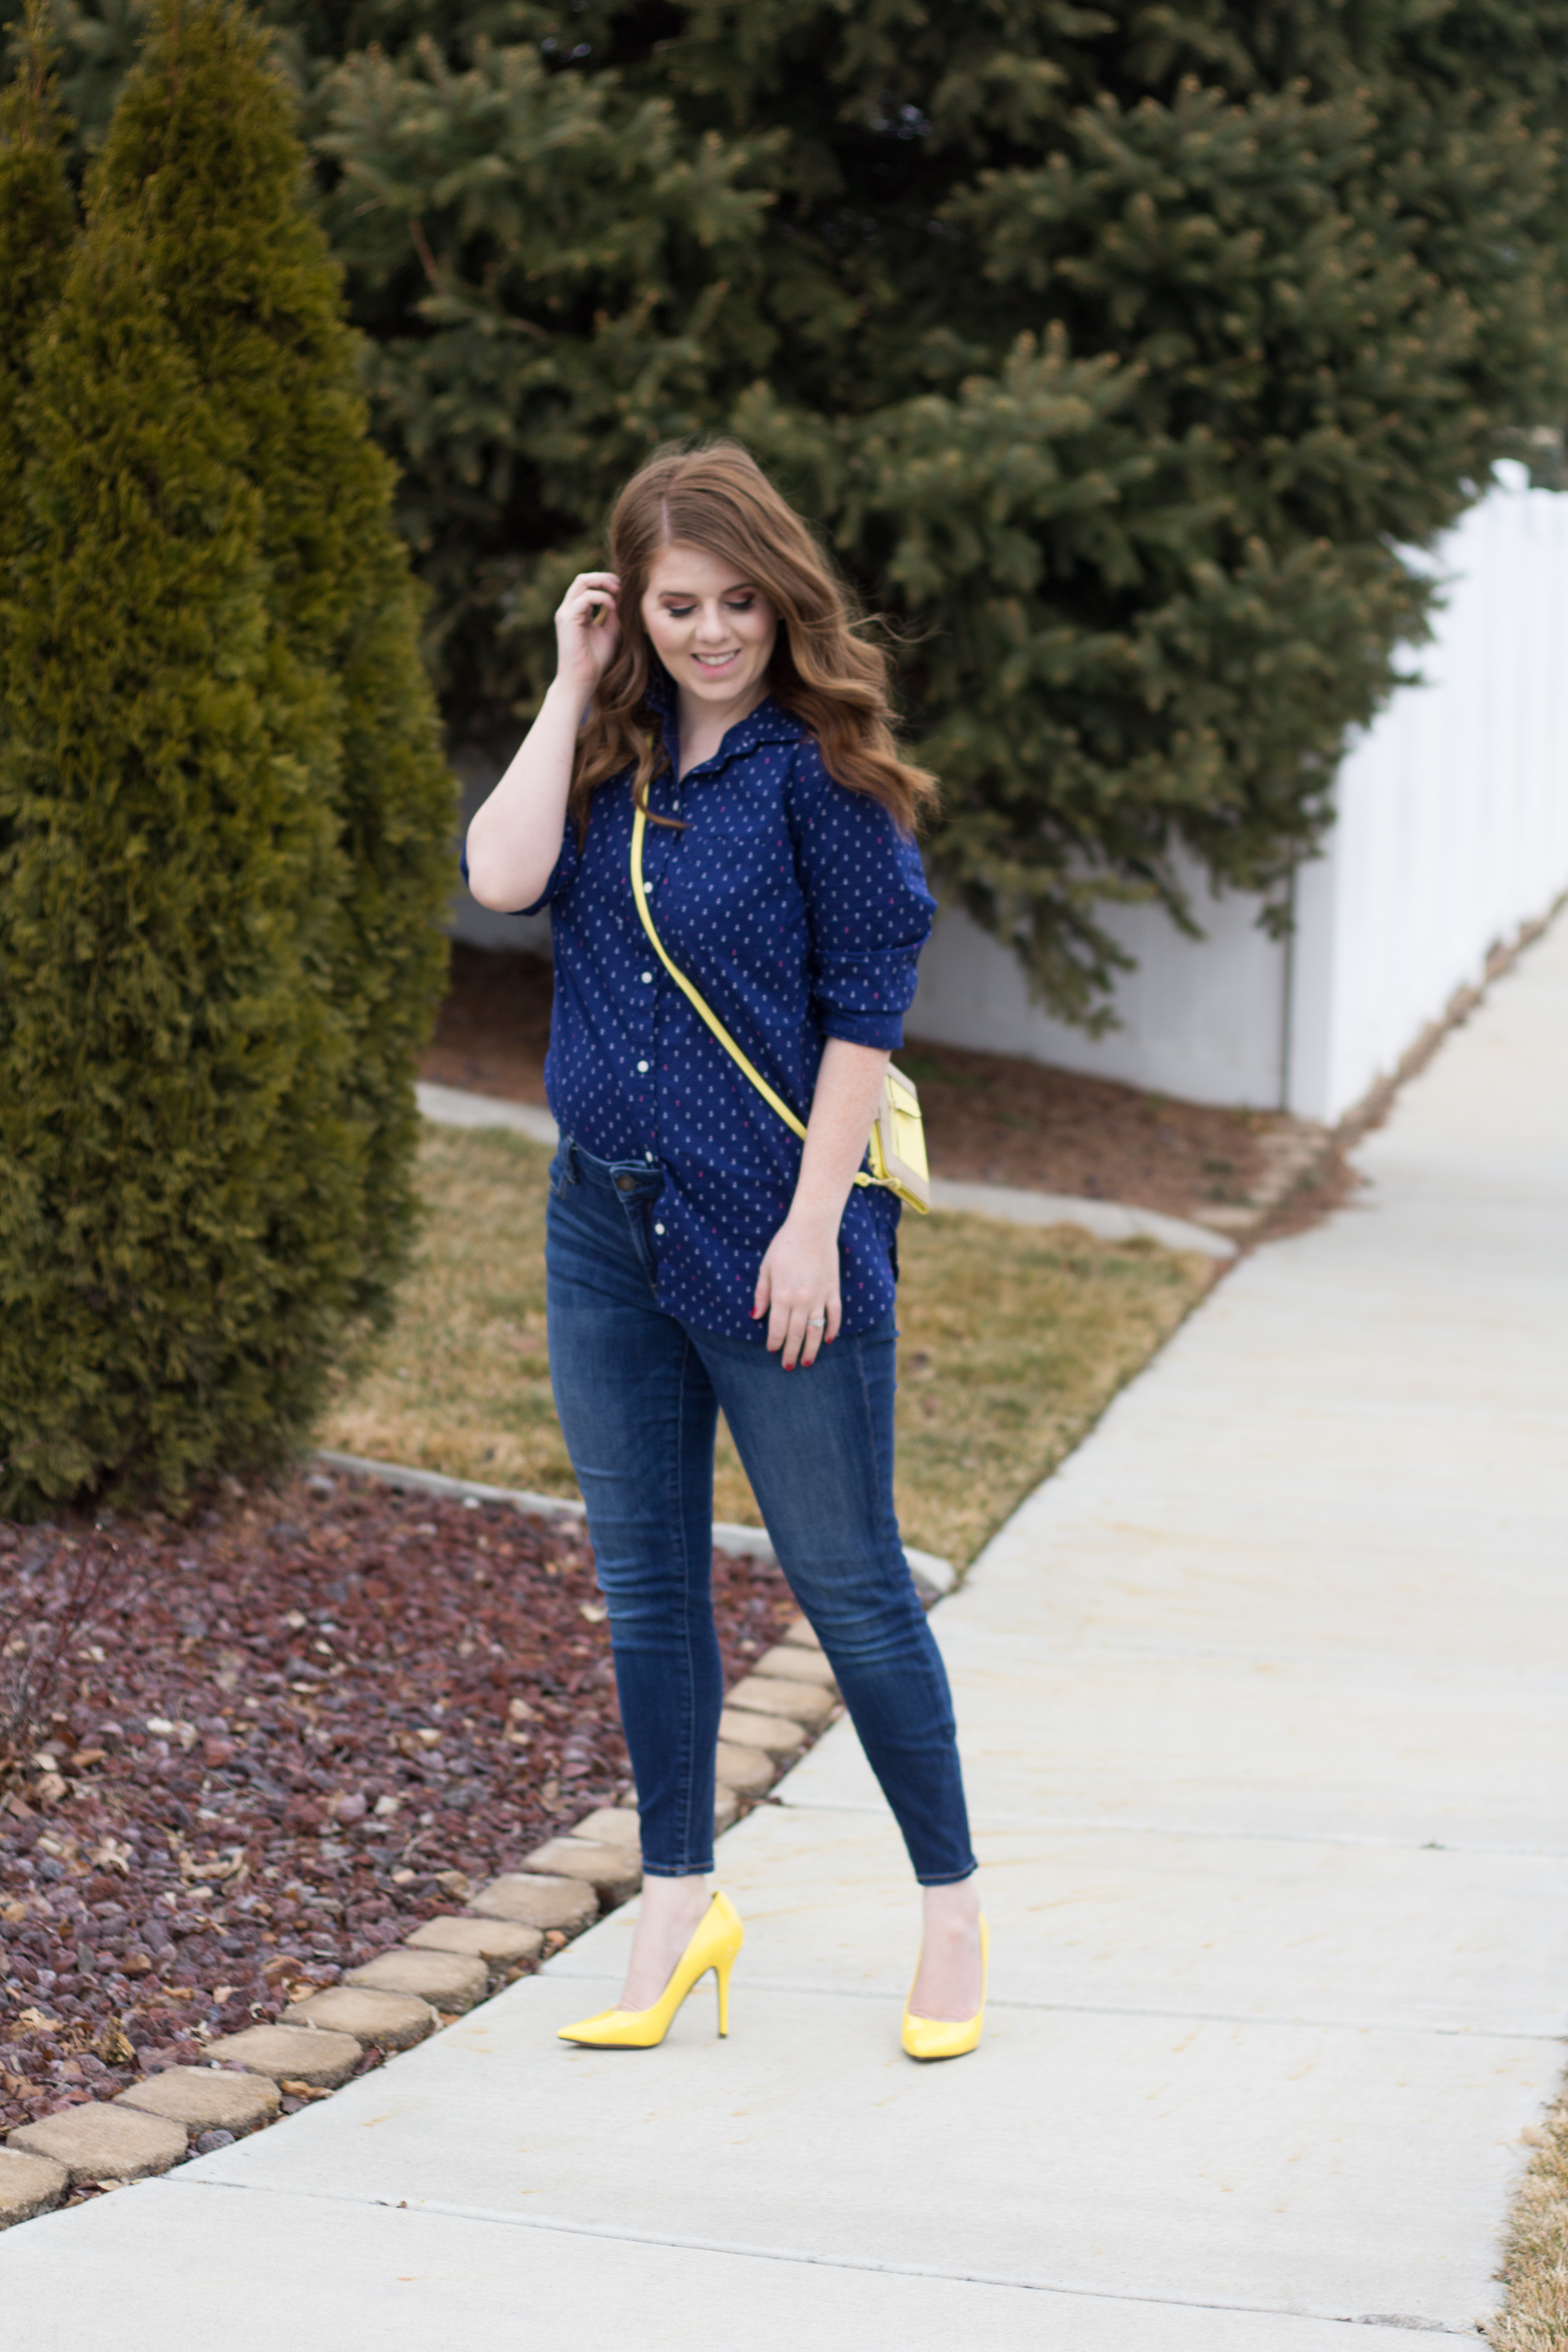 blue outfit and yellow accents